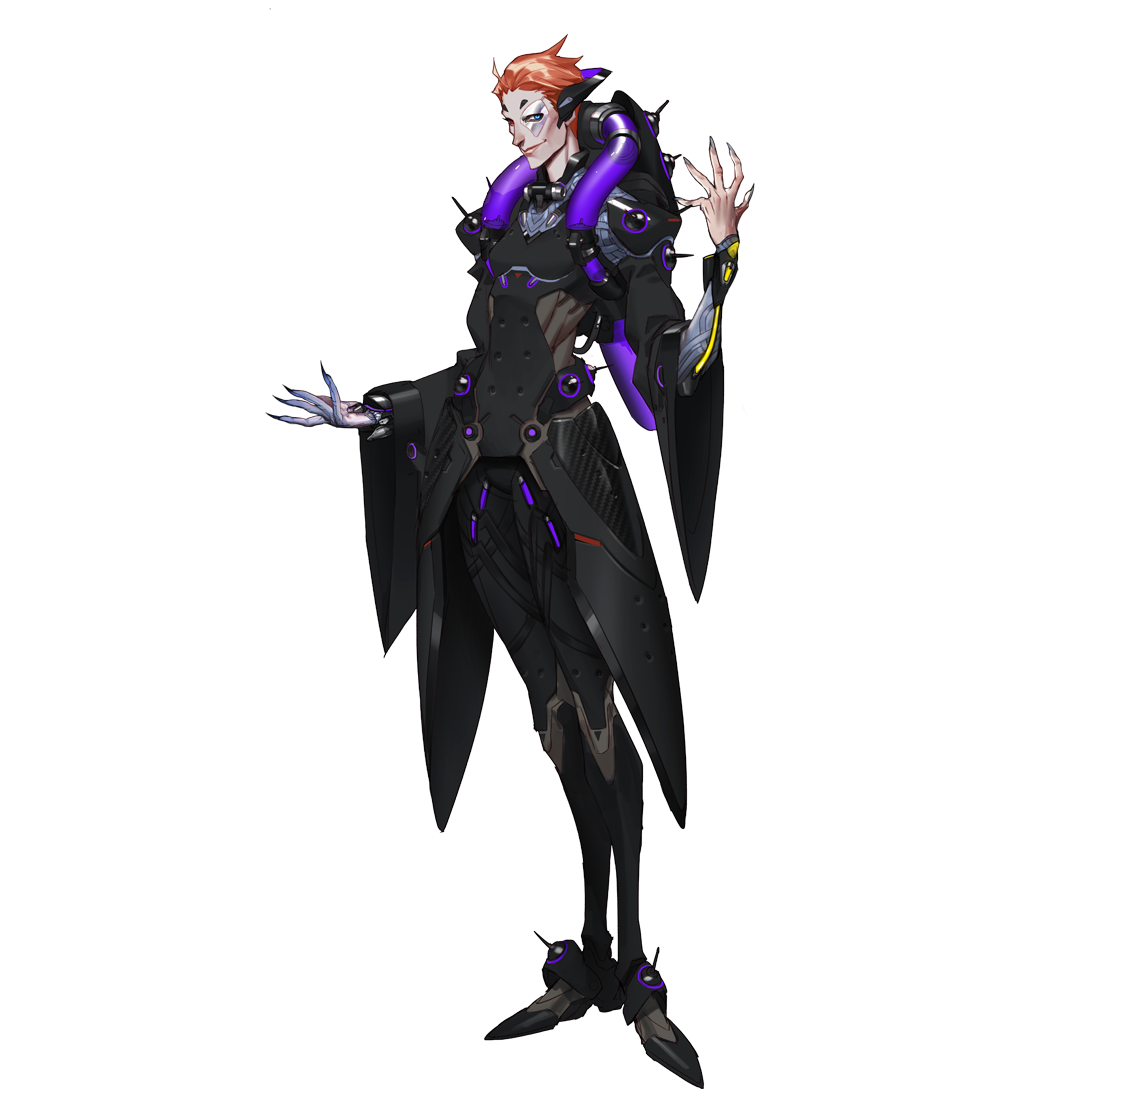 Moira transparent hand. Overwatch tempo storm